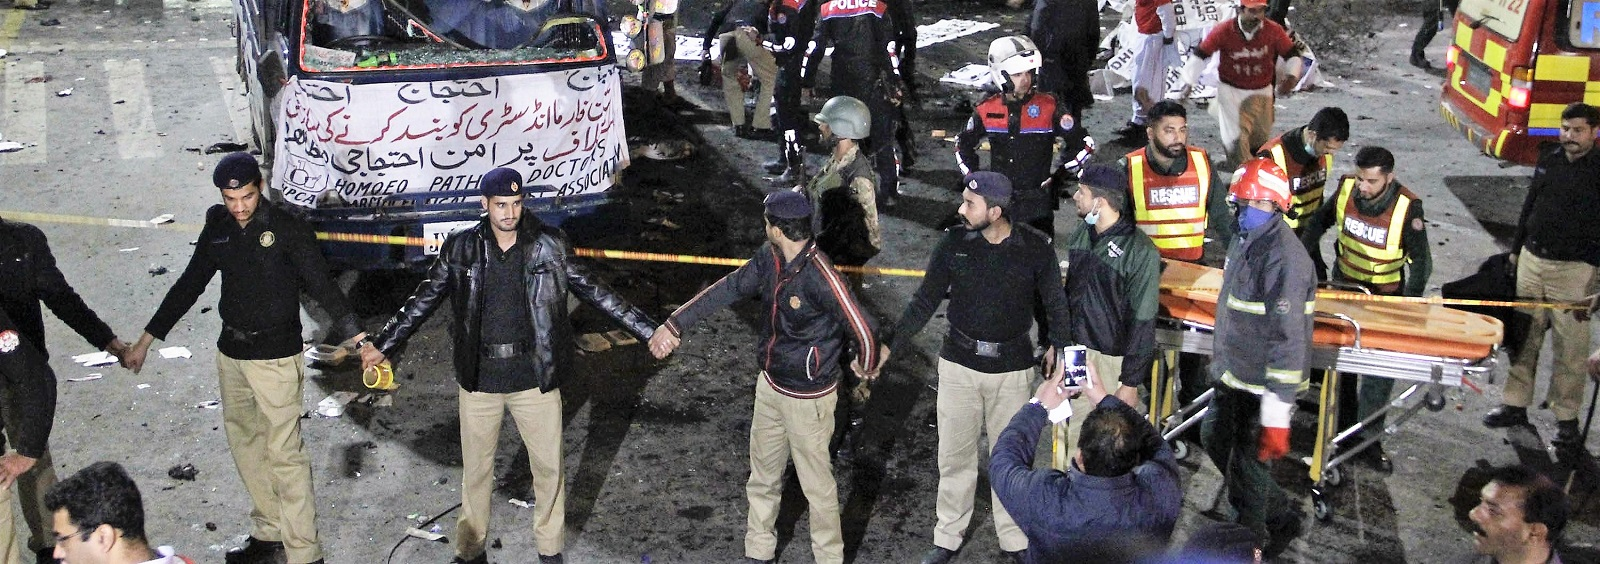 Pakistani security members at the site of Monday's bomb blast. (Photo:Rana Irfan Ali/Getty Images)